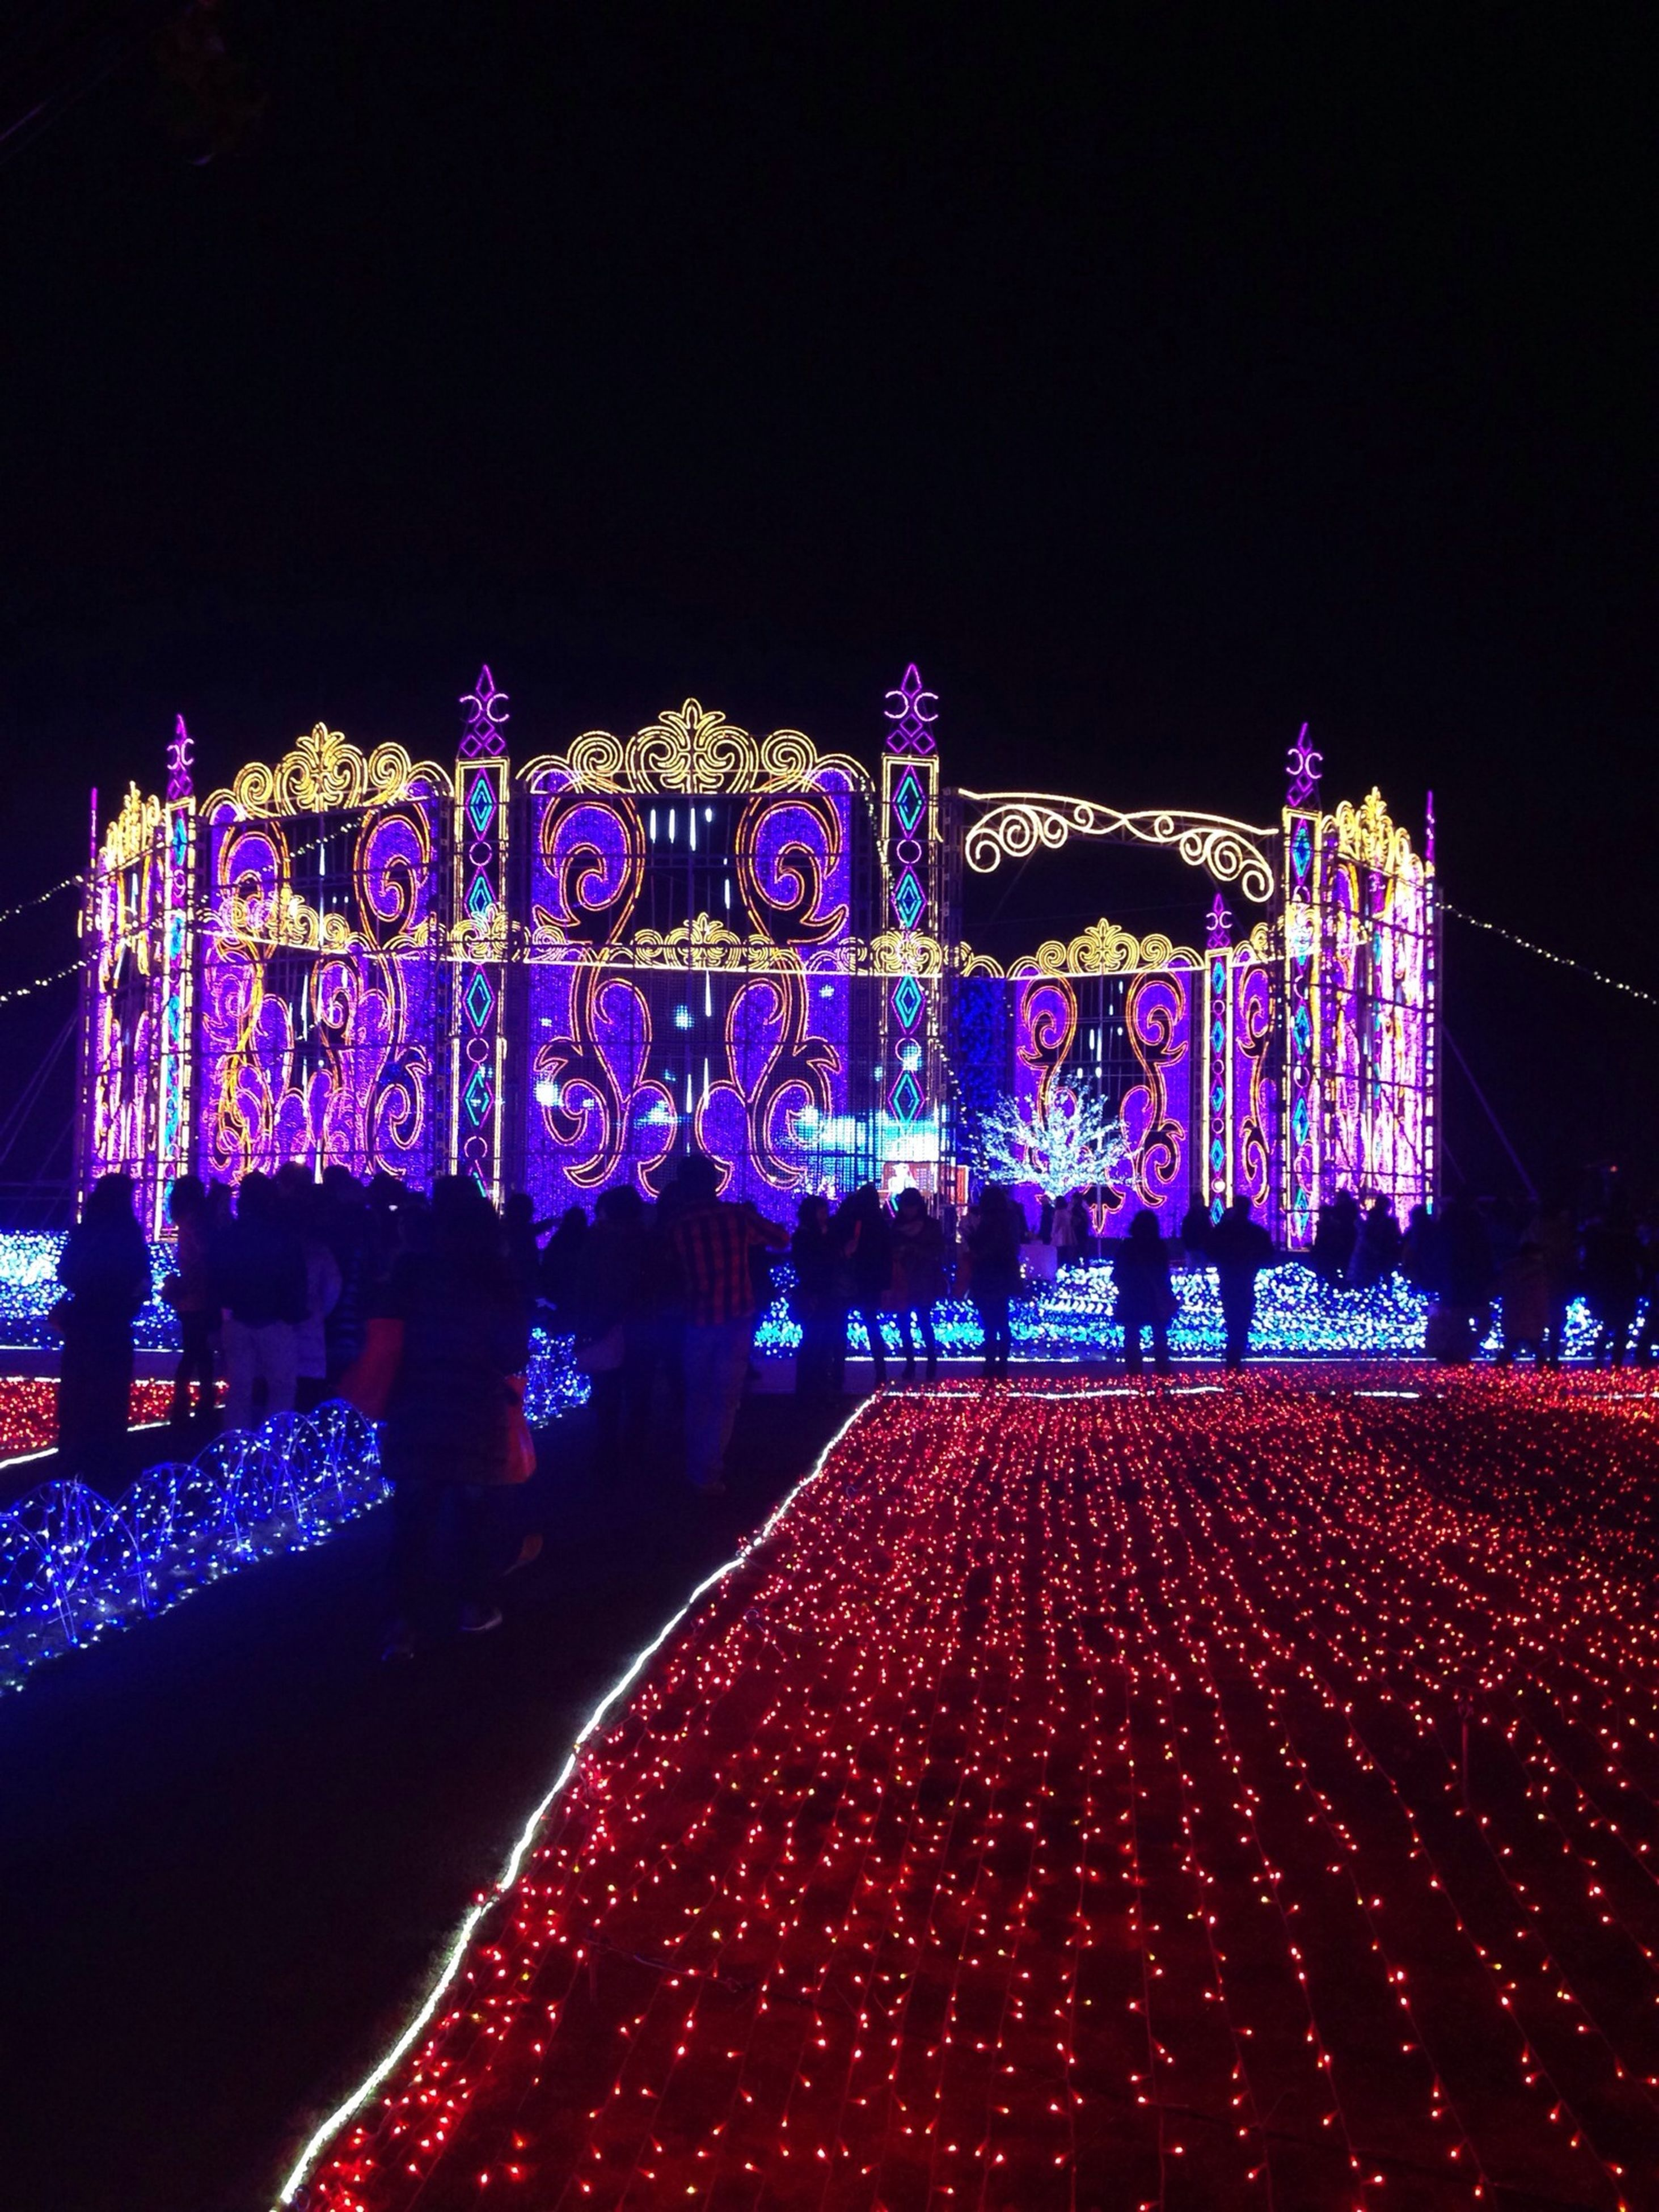 night, illuminated, clear sky, copy space, leisure activity, lighting equipment, multi colored, city, built structure, building exterior, architecture, dark, lifestyles, men, large group of people, celebration, outdoors, arts culture and entertainment, light - natural phenomenon